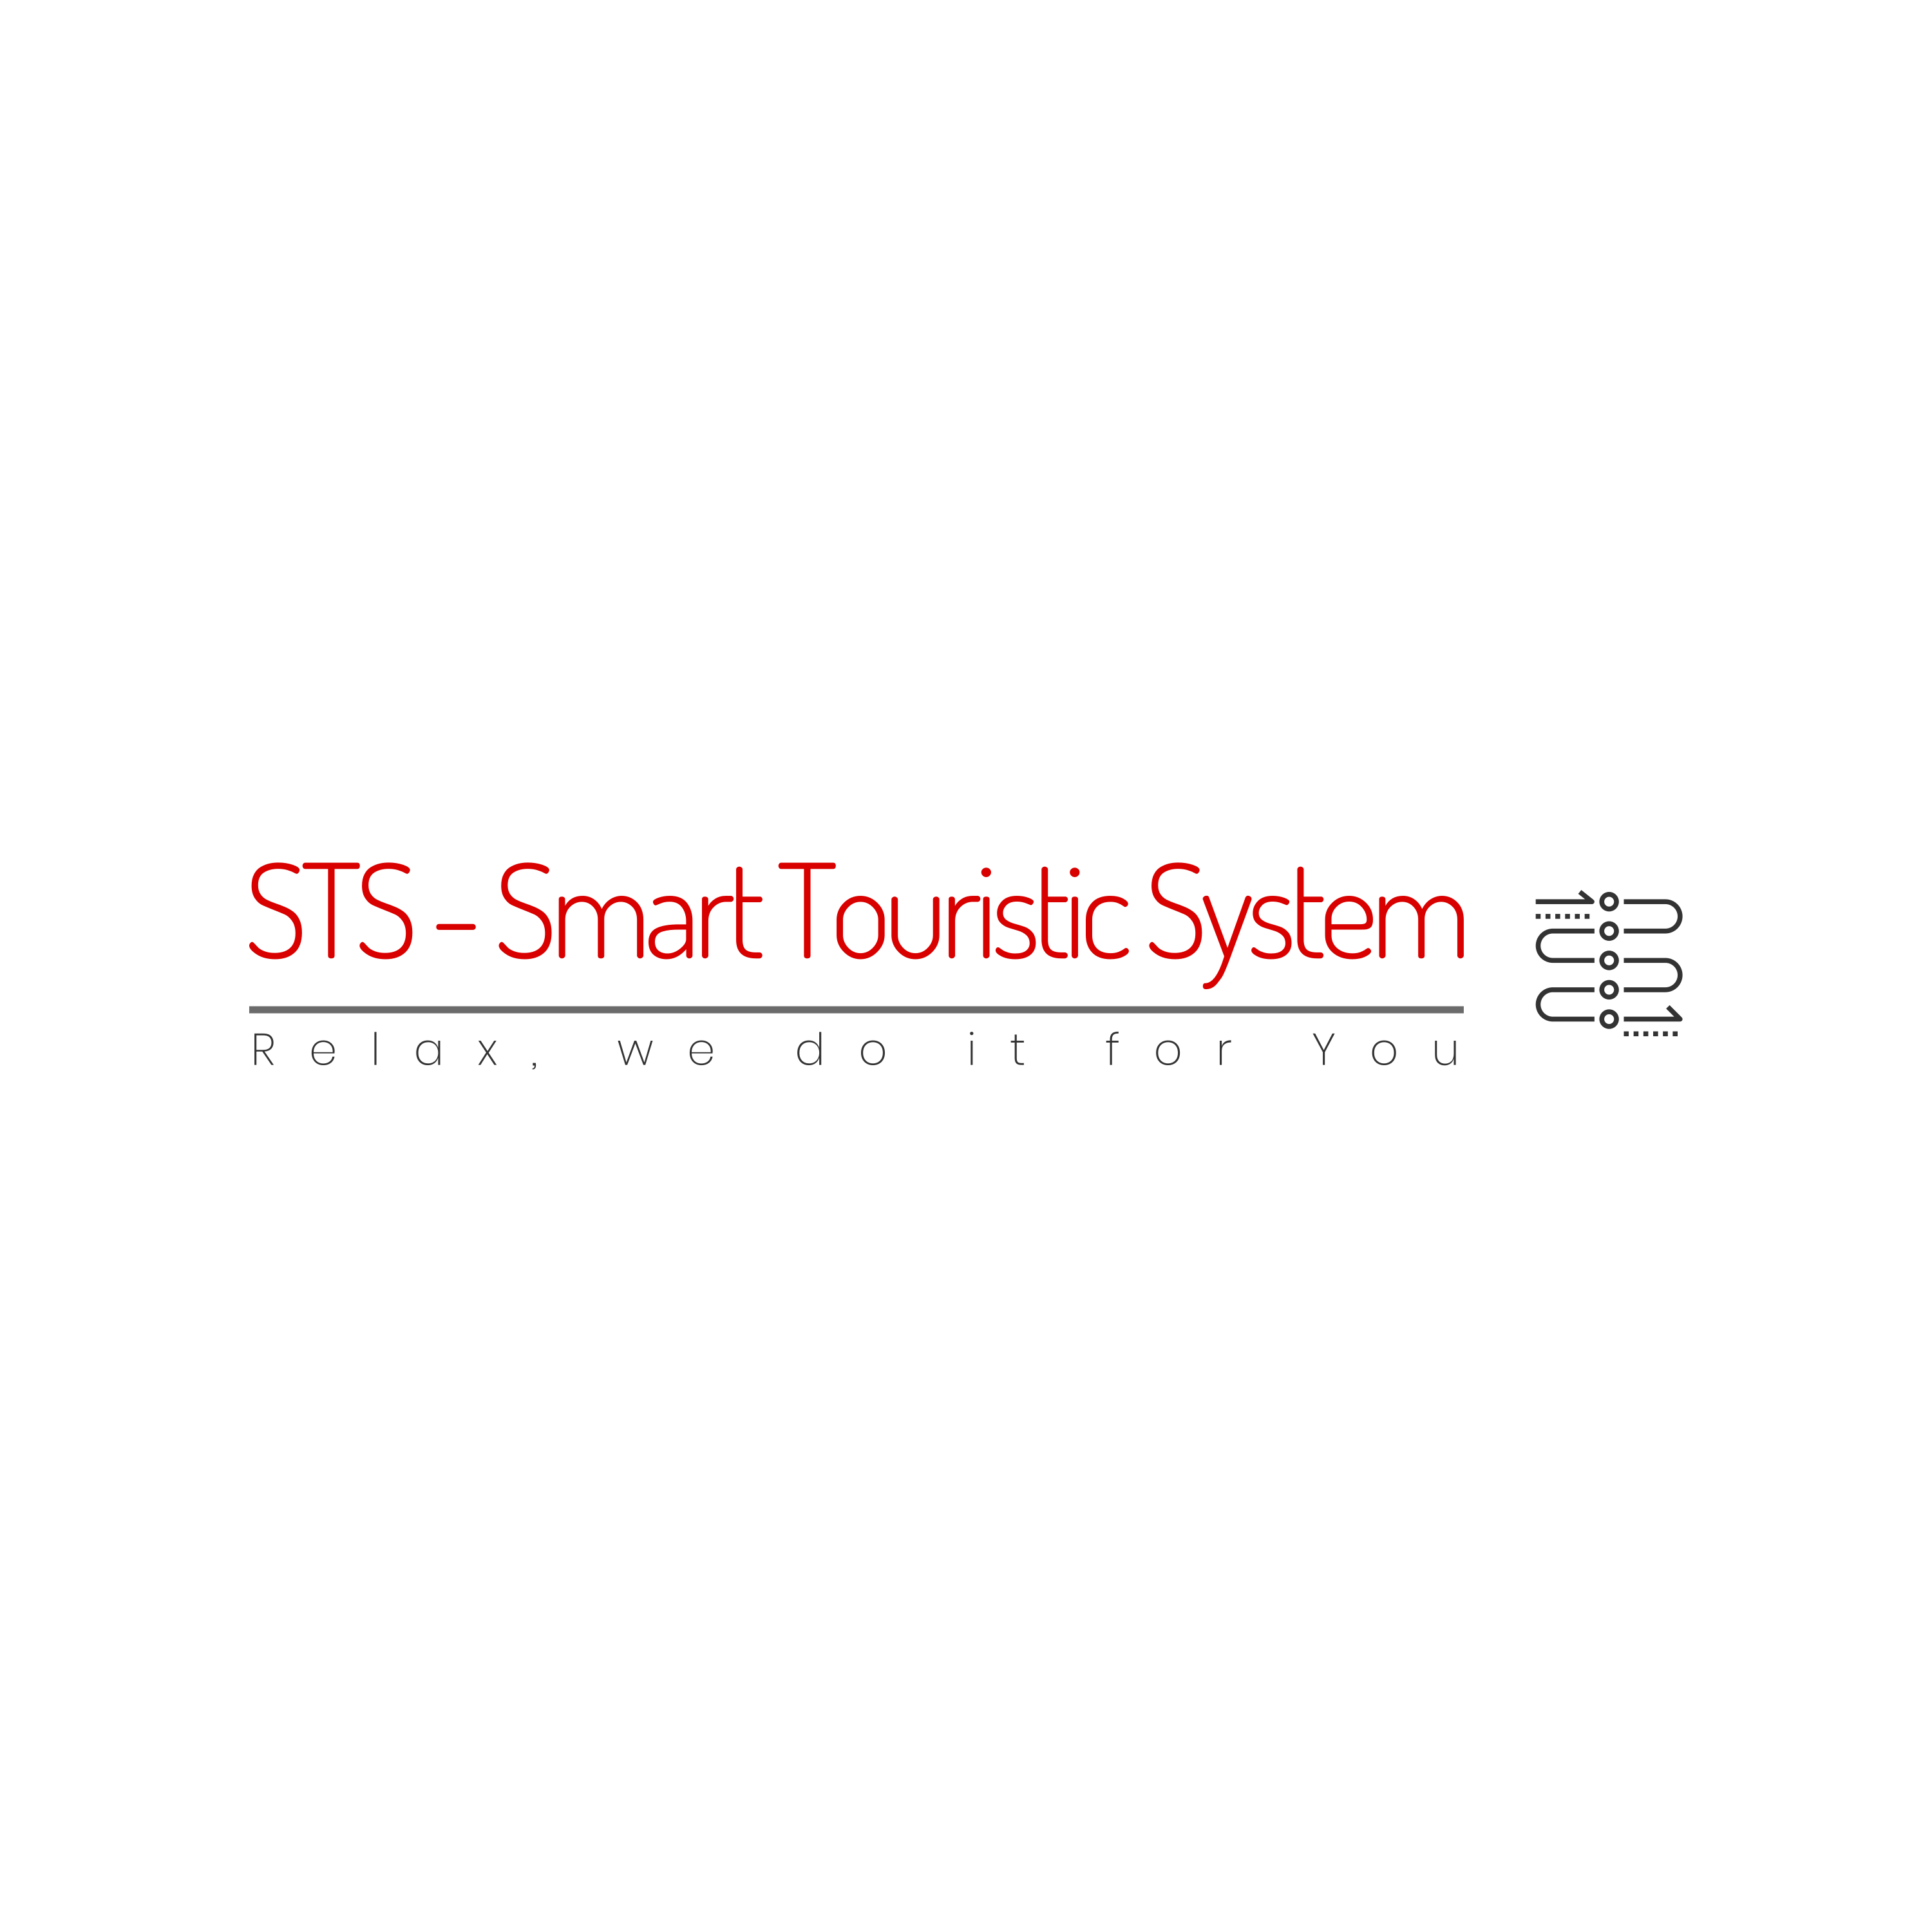 STS - Smart Touristic System